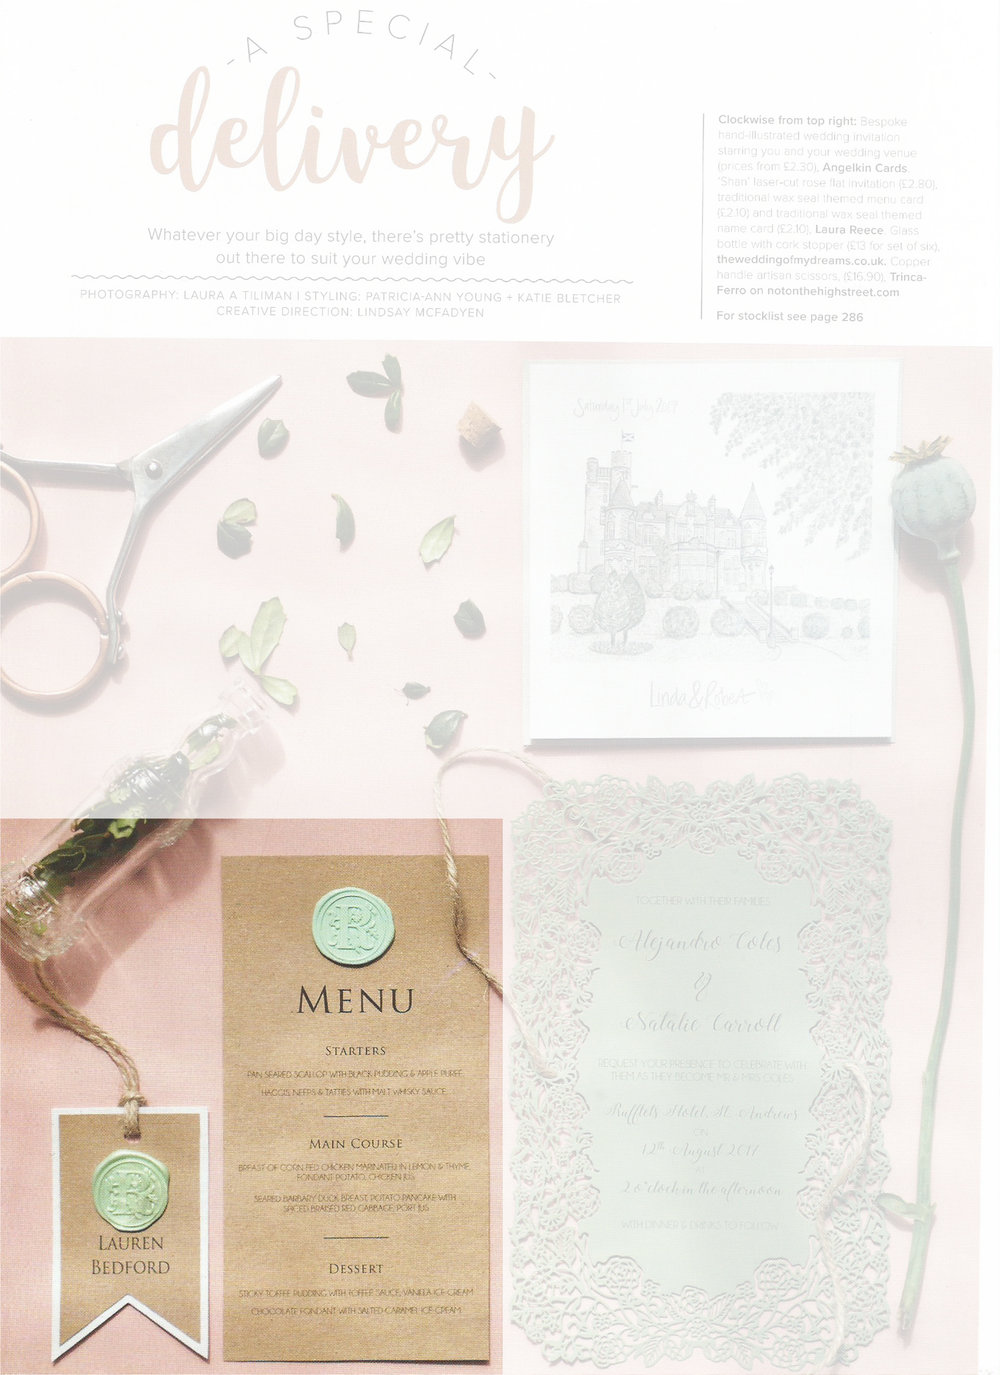 Scottish Wedding Directory - Our traditional wax seals are great for addition a little touch of regal to your stationery. Our seals were used on menu & name cards which were then featured in the magazine.Can be found in autumn 17' issue, page 249